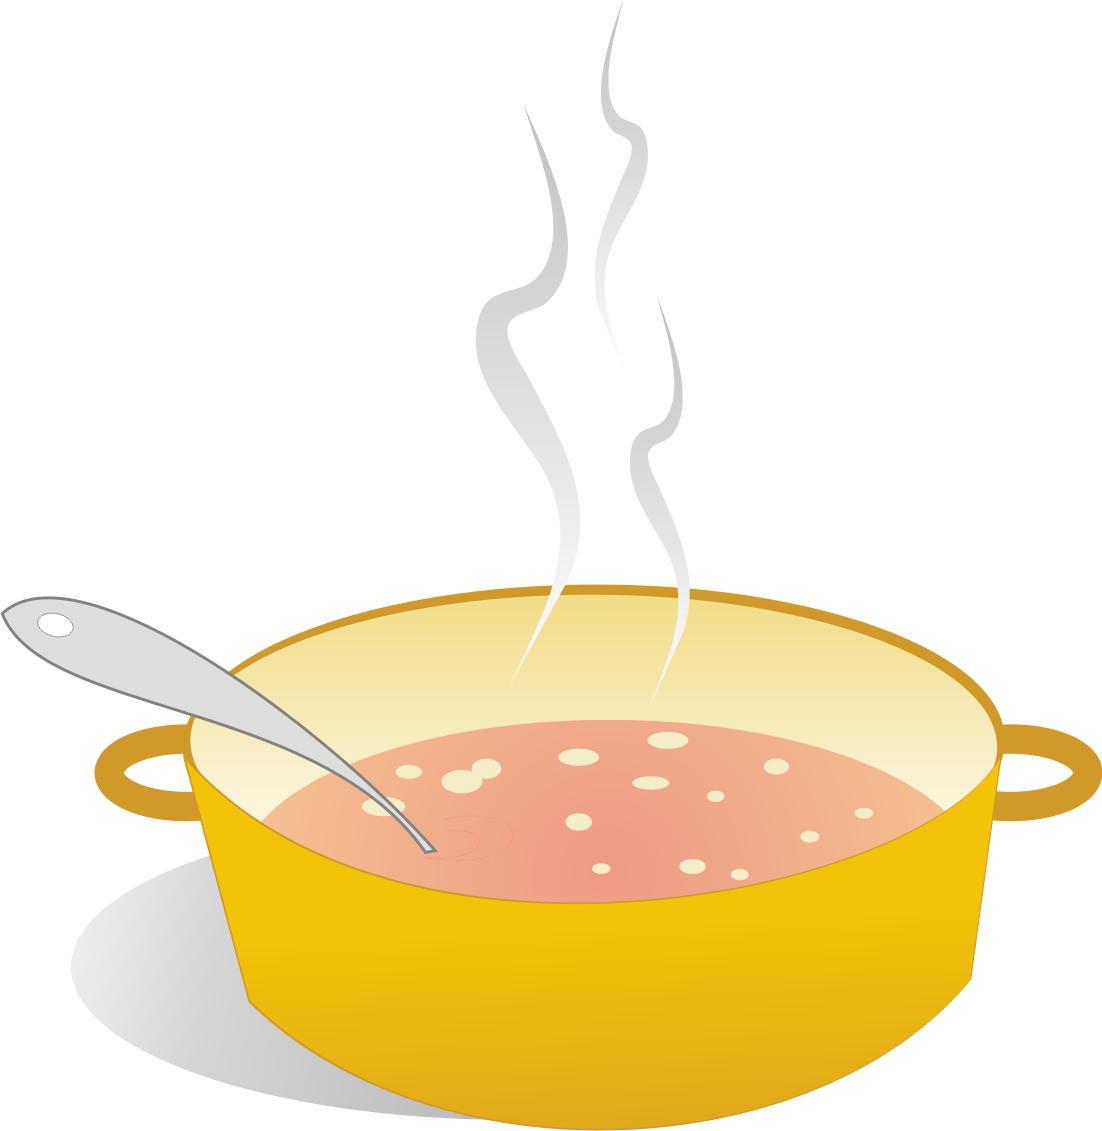 Soup clipart hot object. Download png image free